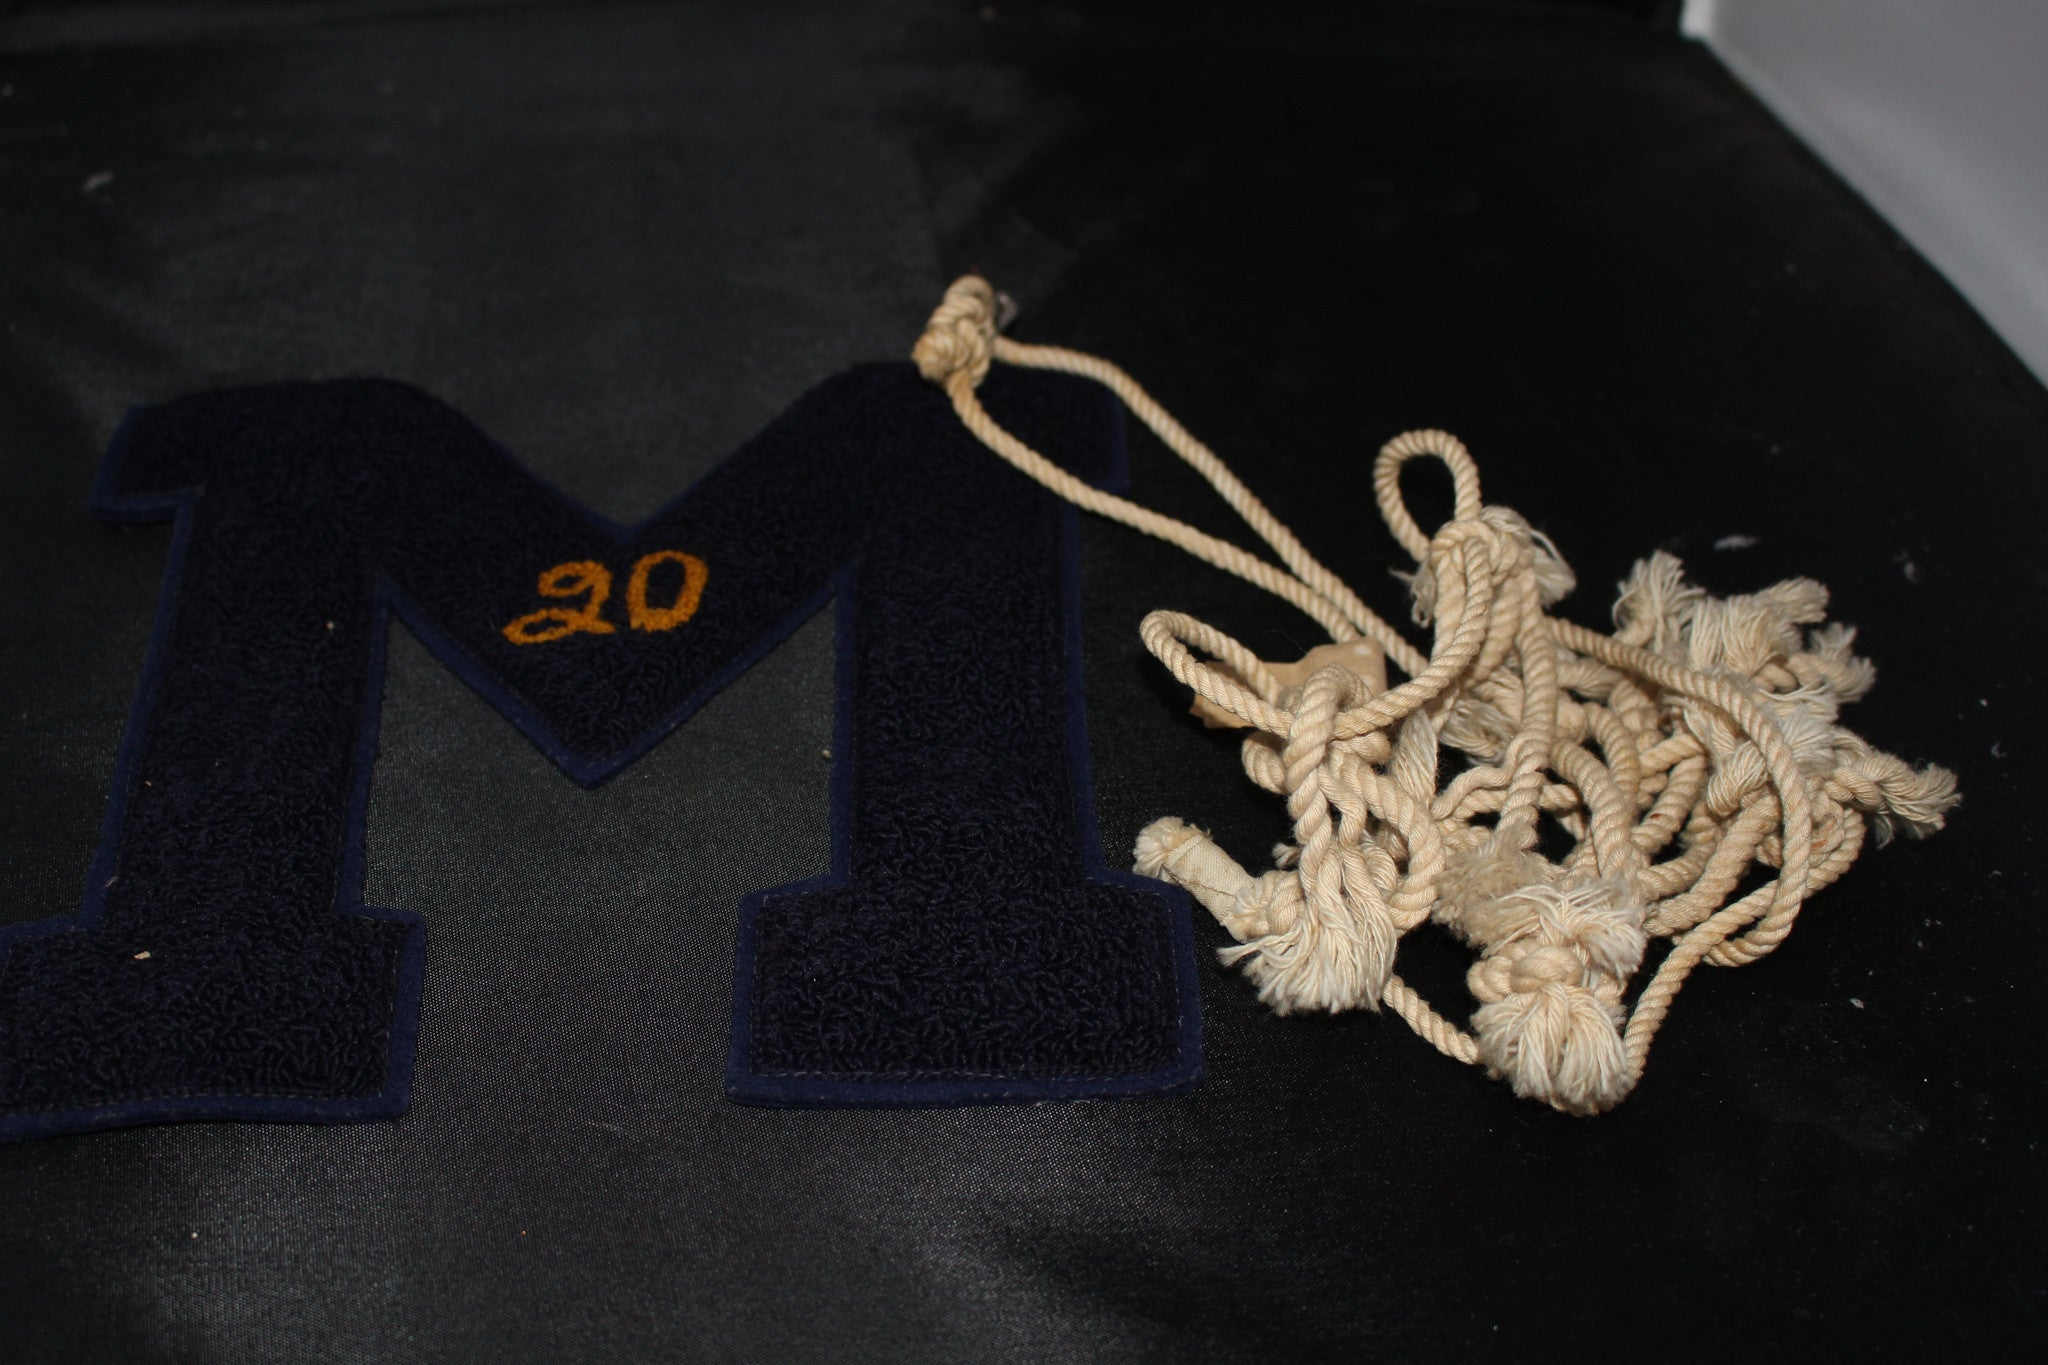 1956 Marion High School Letter & Regional Basketball Championship Net - Vintage Indy Sports